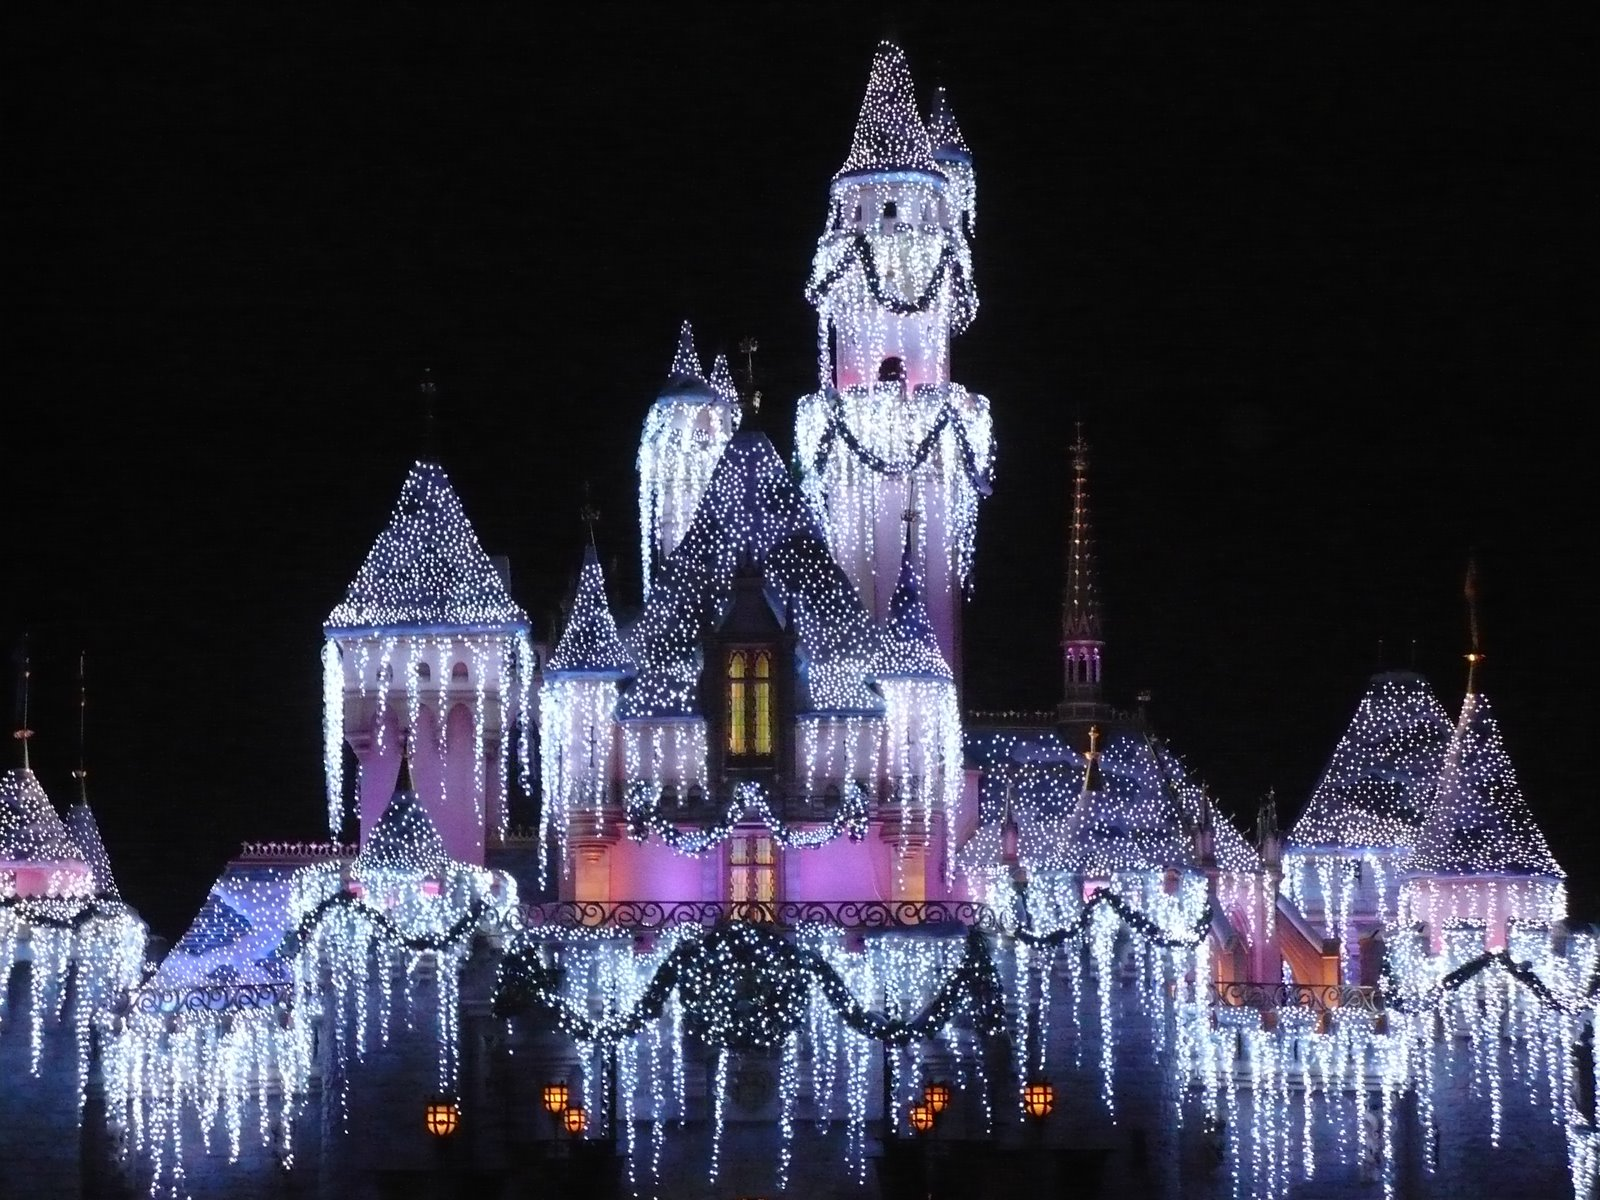 Wayfaring mouse the world of disney for the young at heart disney disneyland castle at christmas voltagebd Images